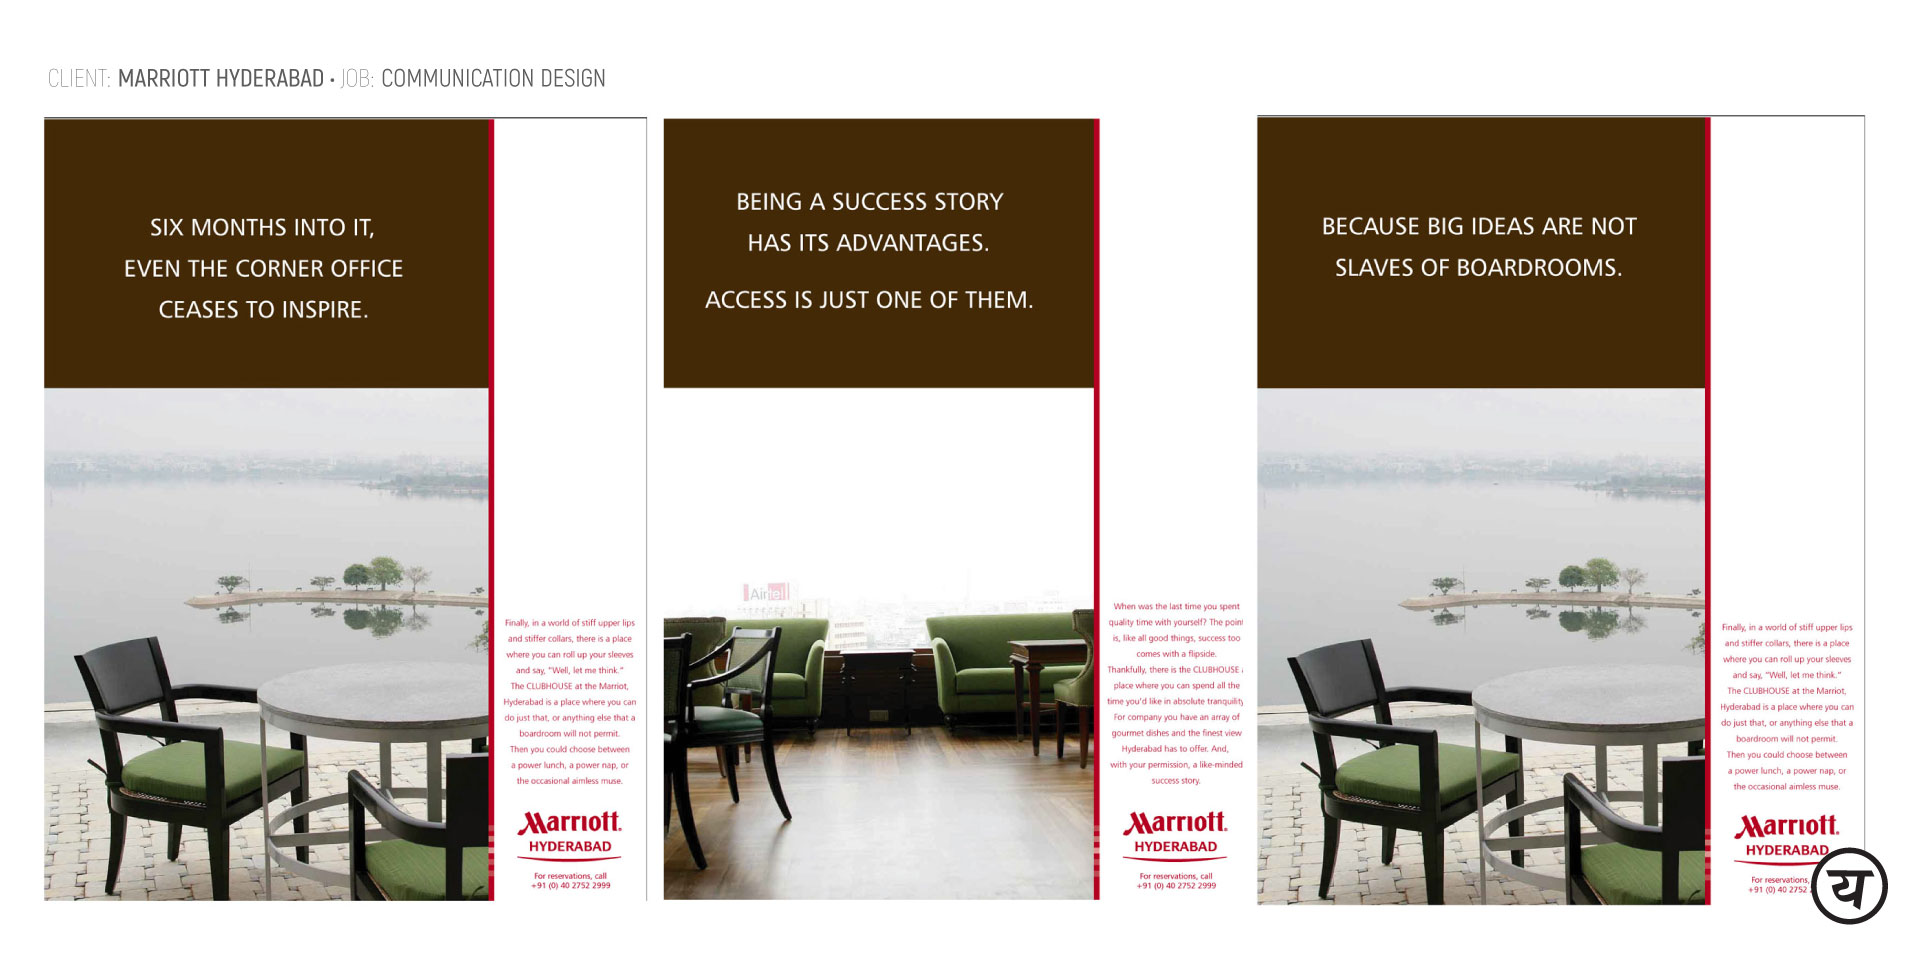 YesYesWhyNot_Communication-Design_Marriott-#6_04.08.19